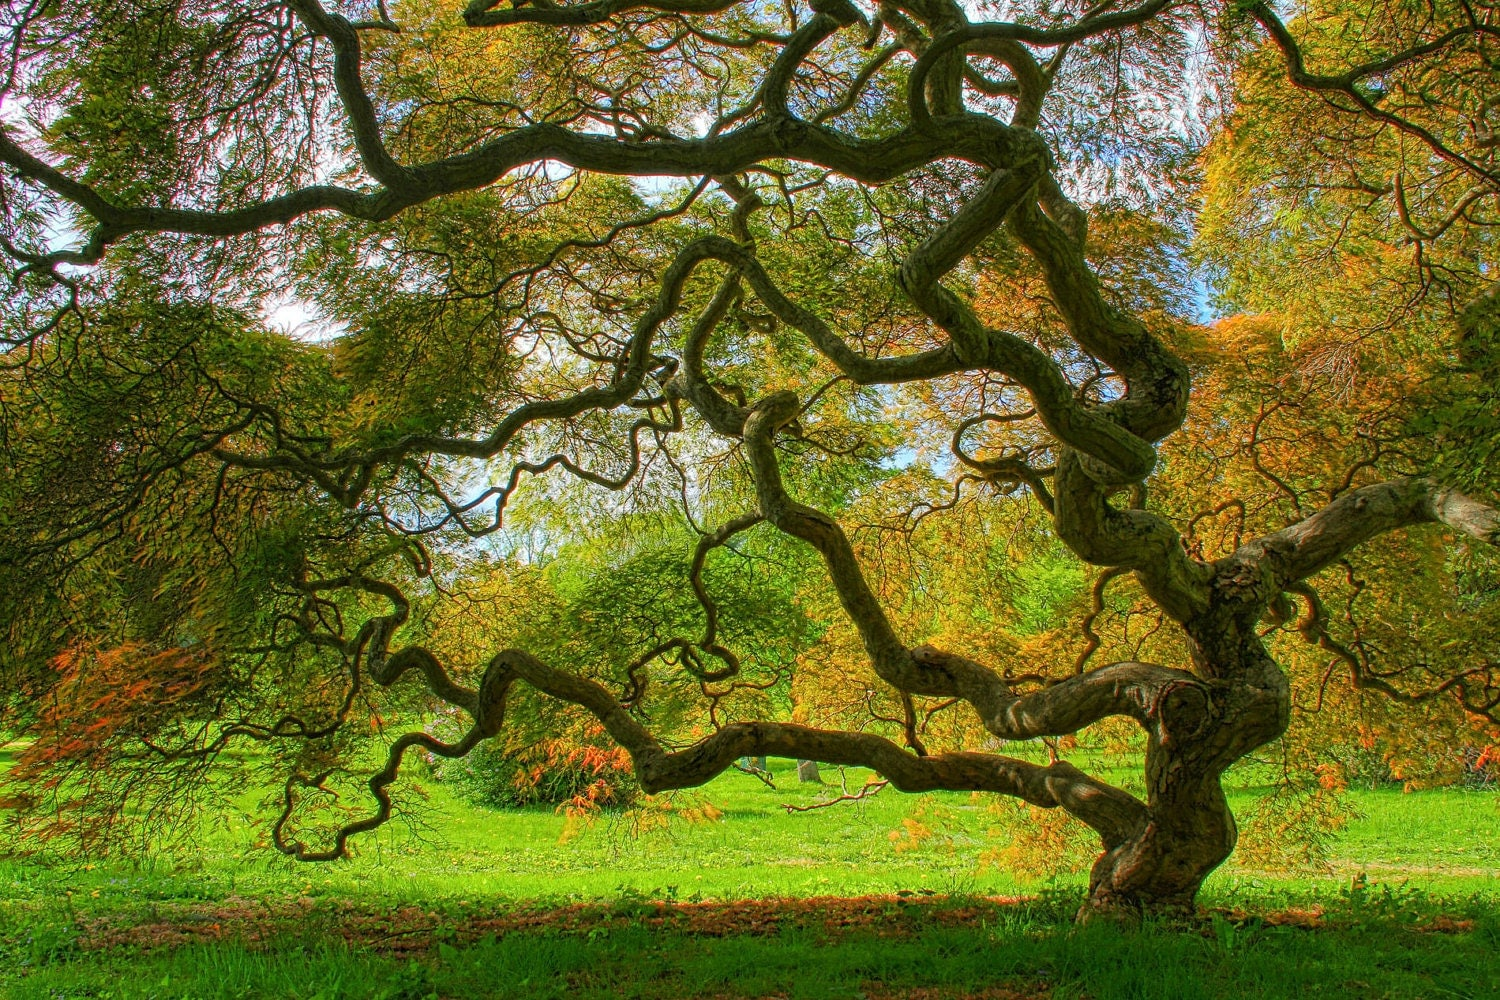 japanese maple tree in spring landscape photograph green